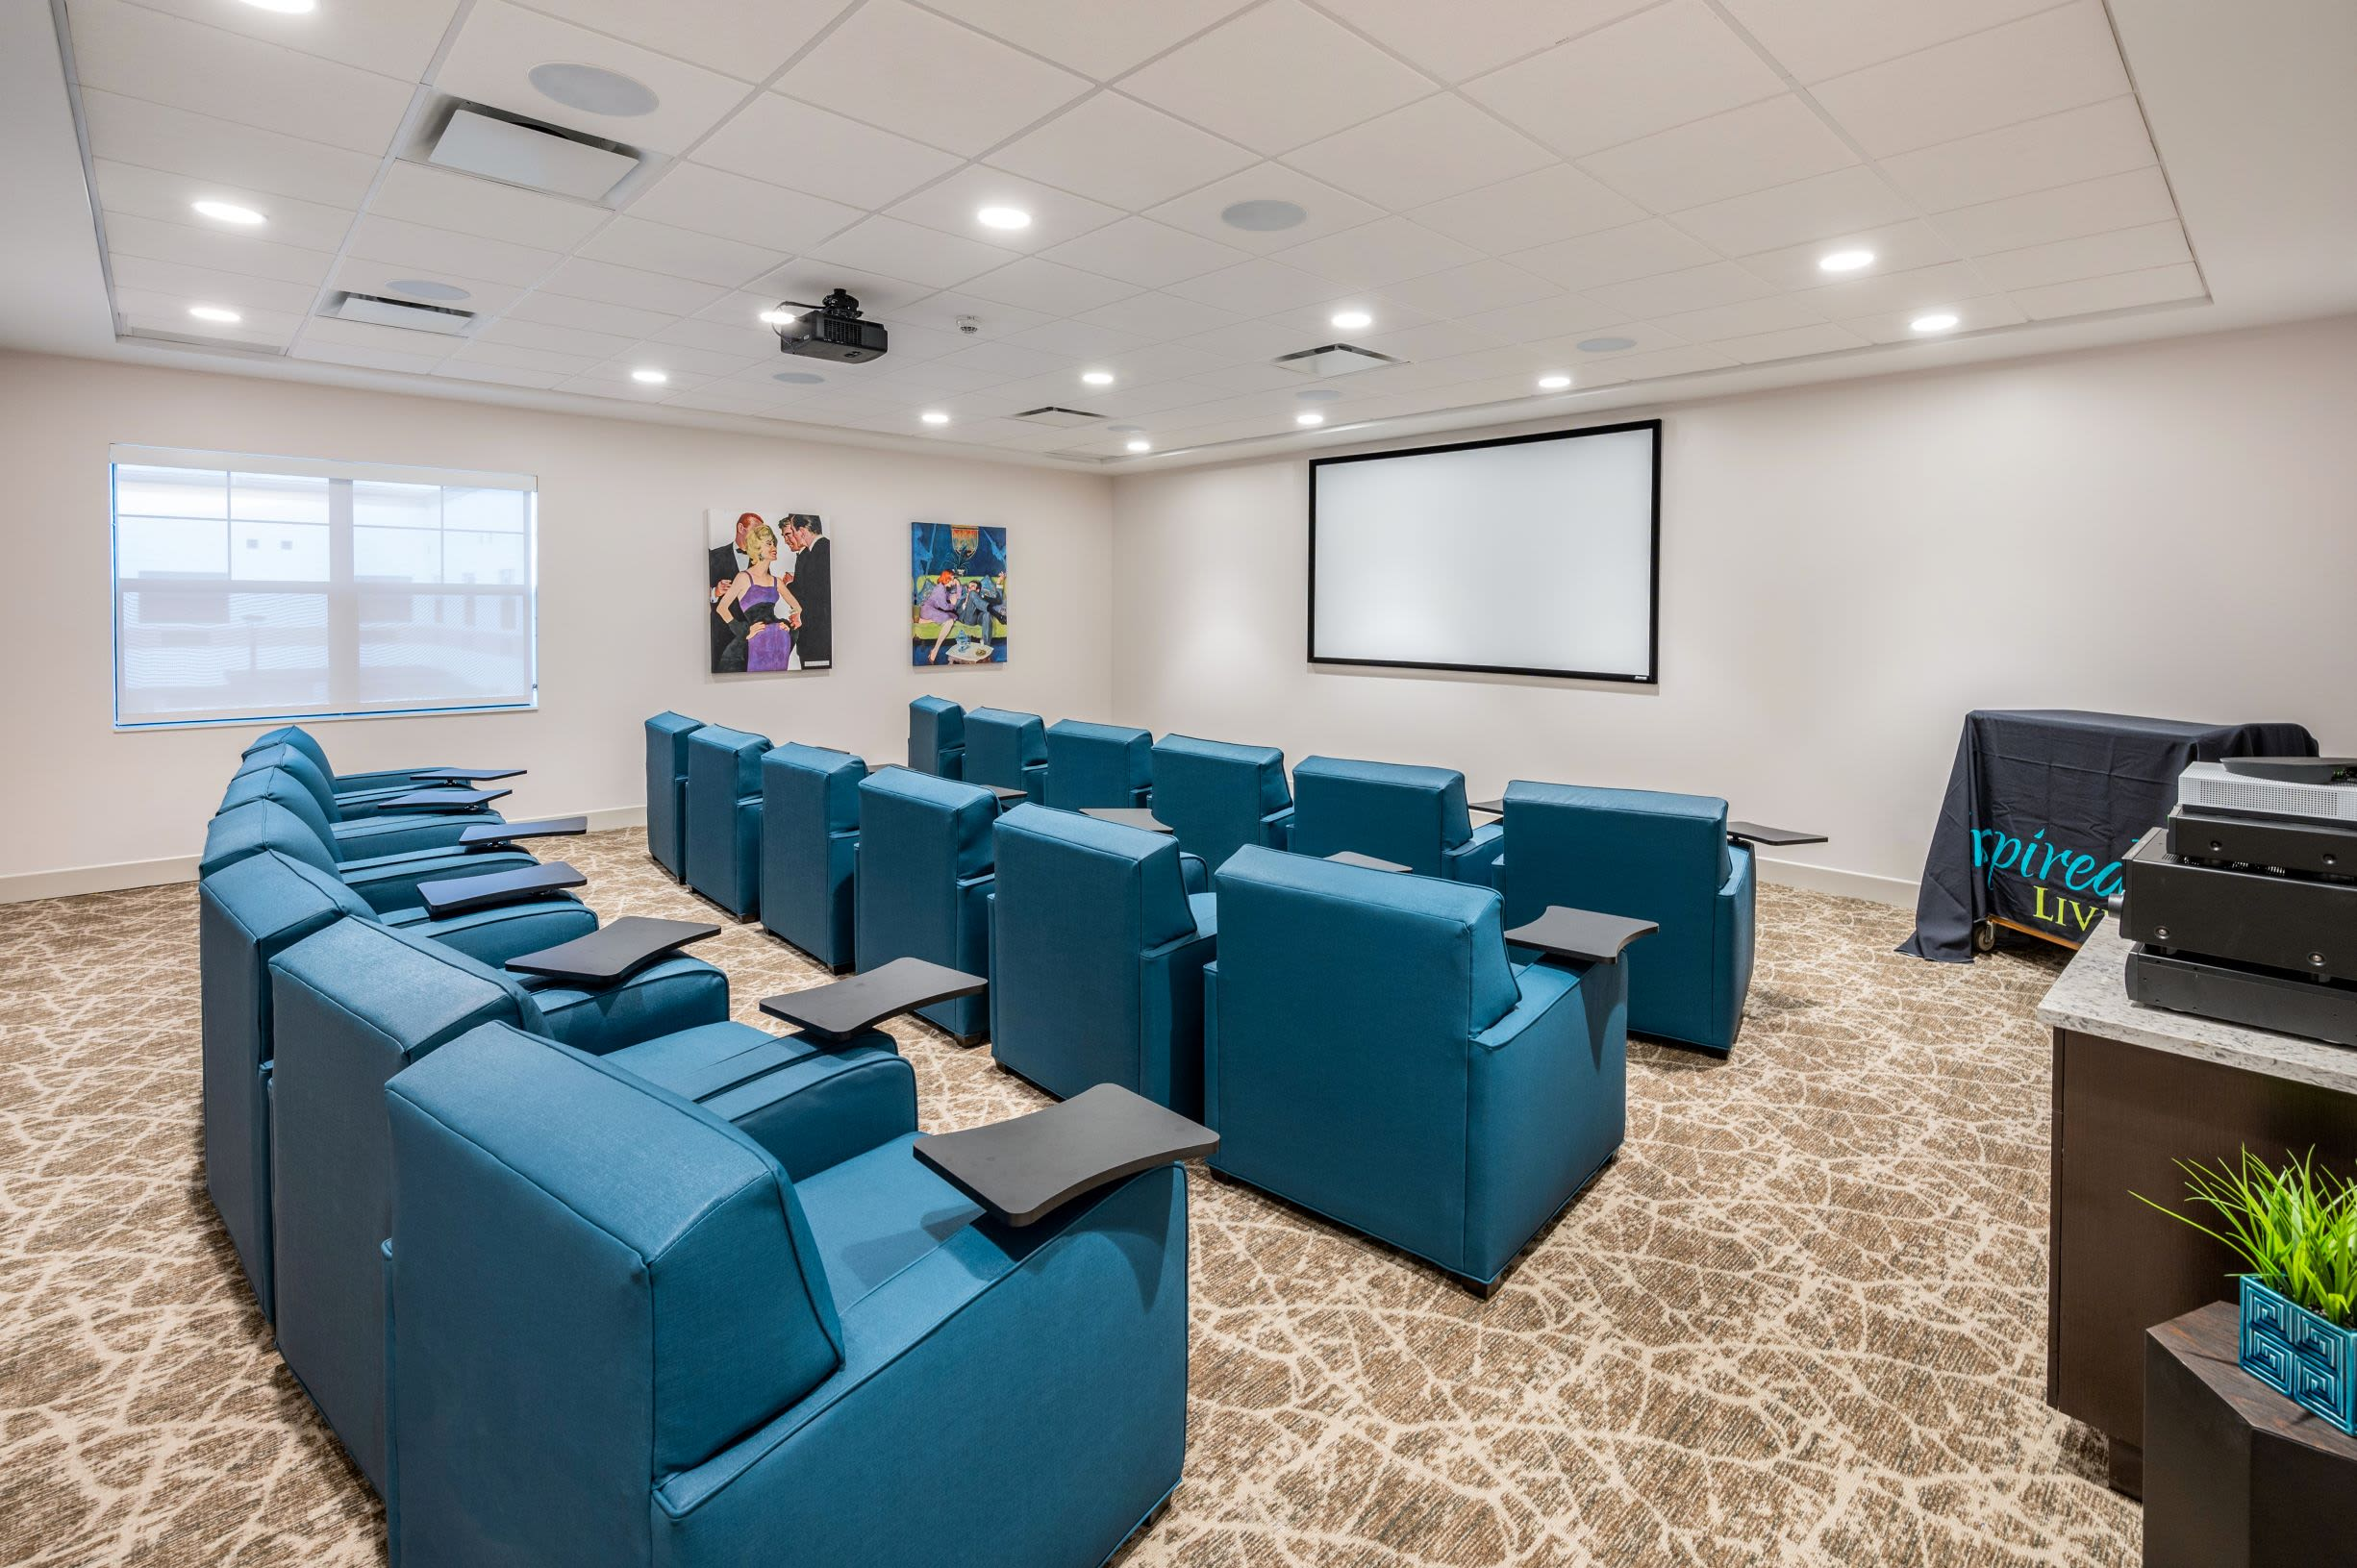 Movie Theatre at Inspired Living Royal Palm Beach in Royal Palm Beach, Florida.